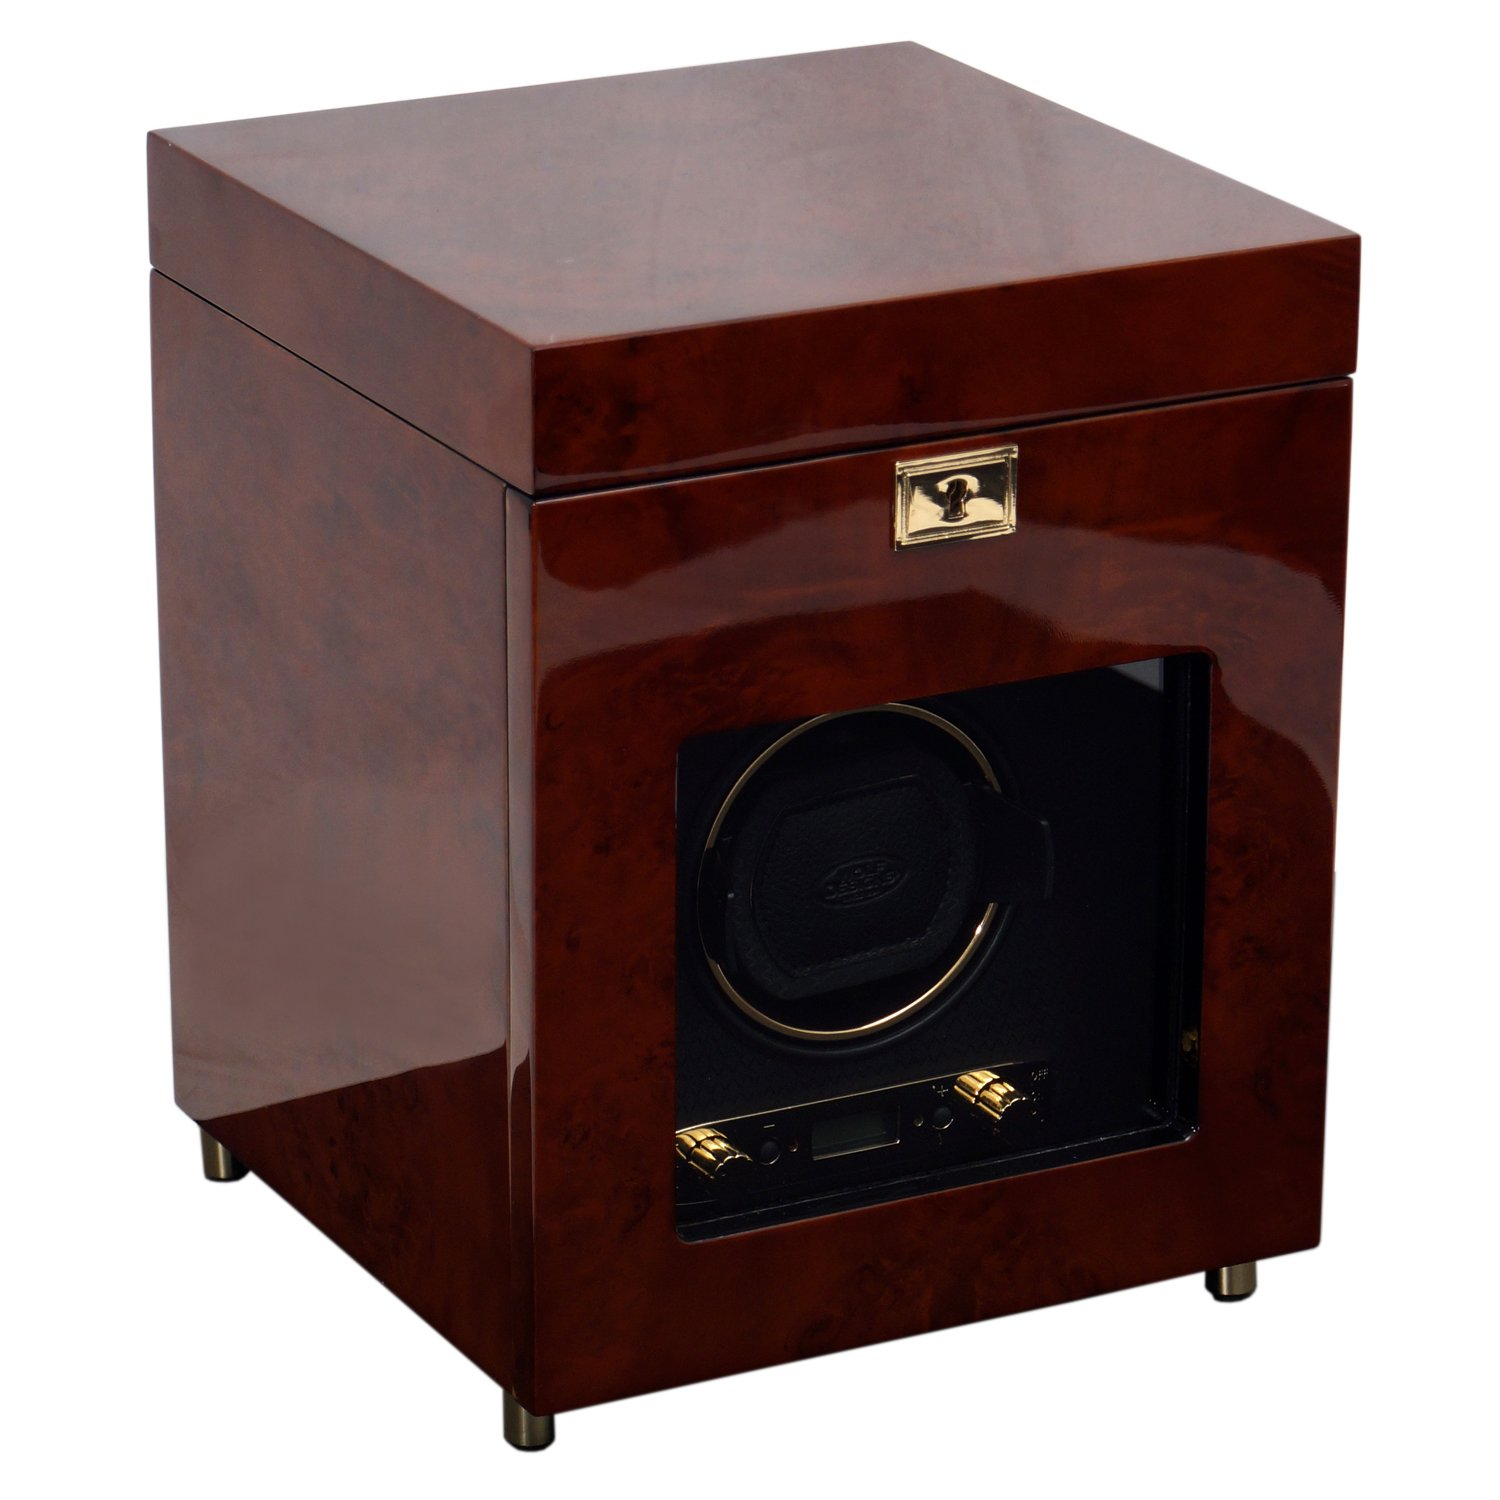 WOLF 454510 Savoy Single Watch Winder with Cover and Storage, Burlwood